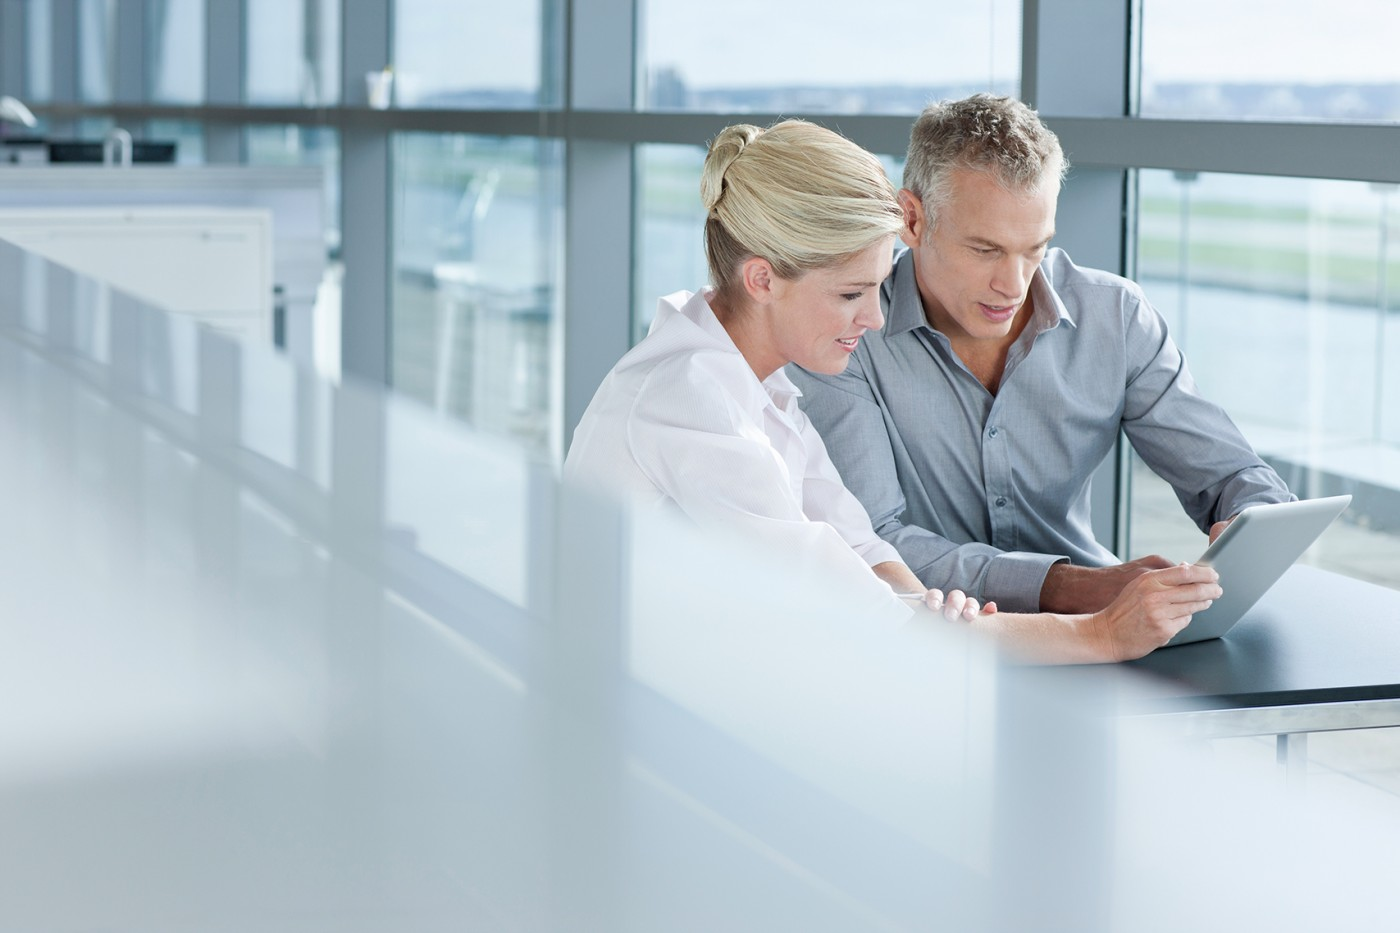 Businessman and businesswoman using digital tablet at office window